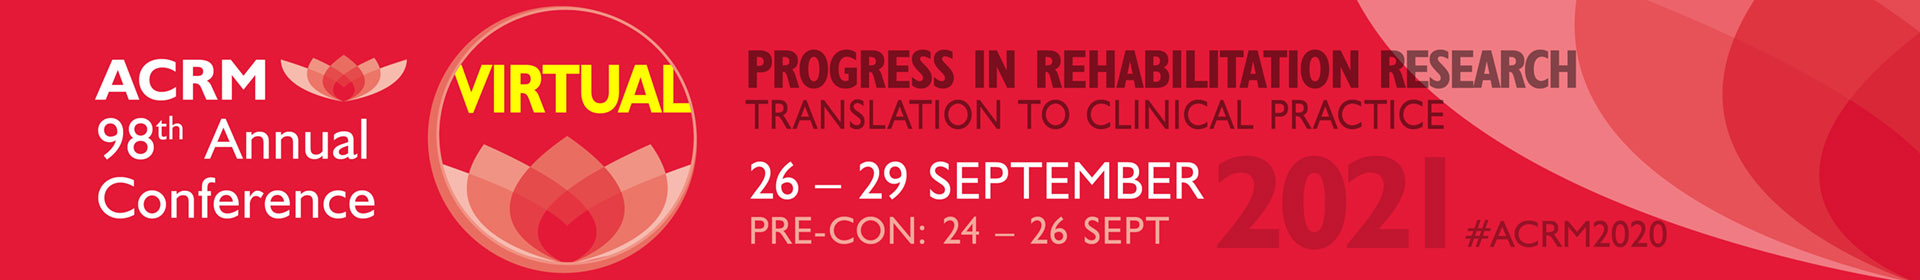 ACRM 98th Annual Conference header